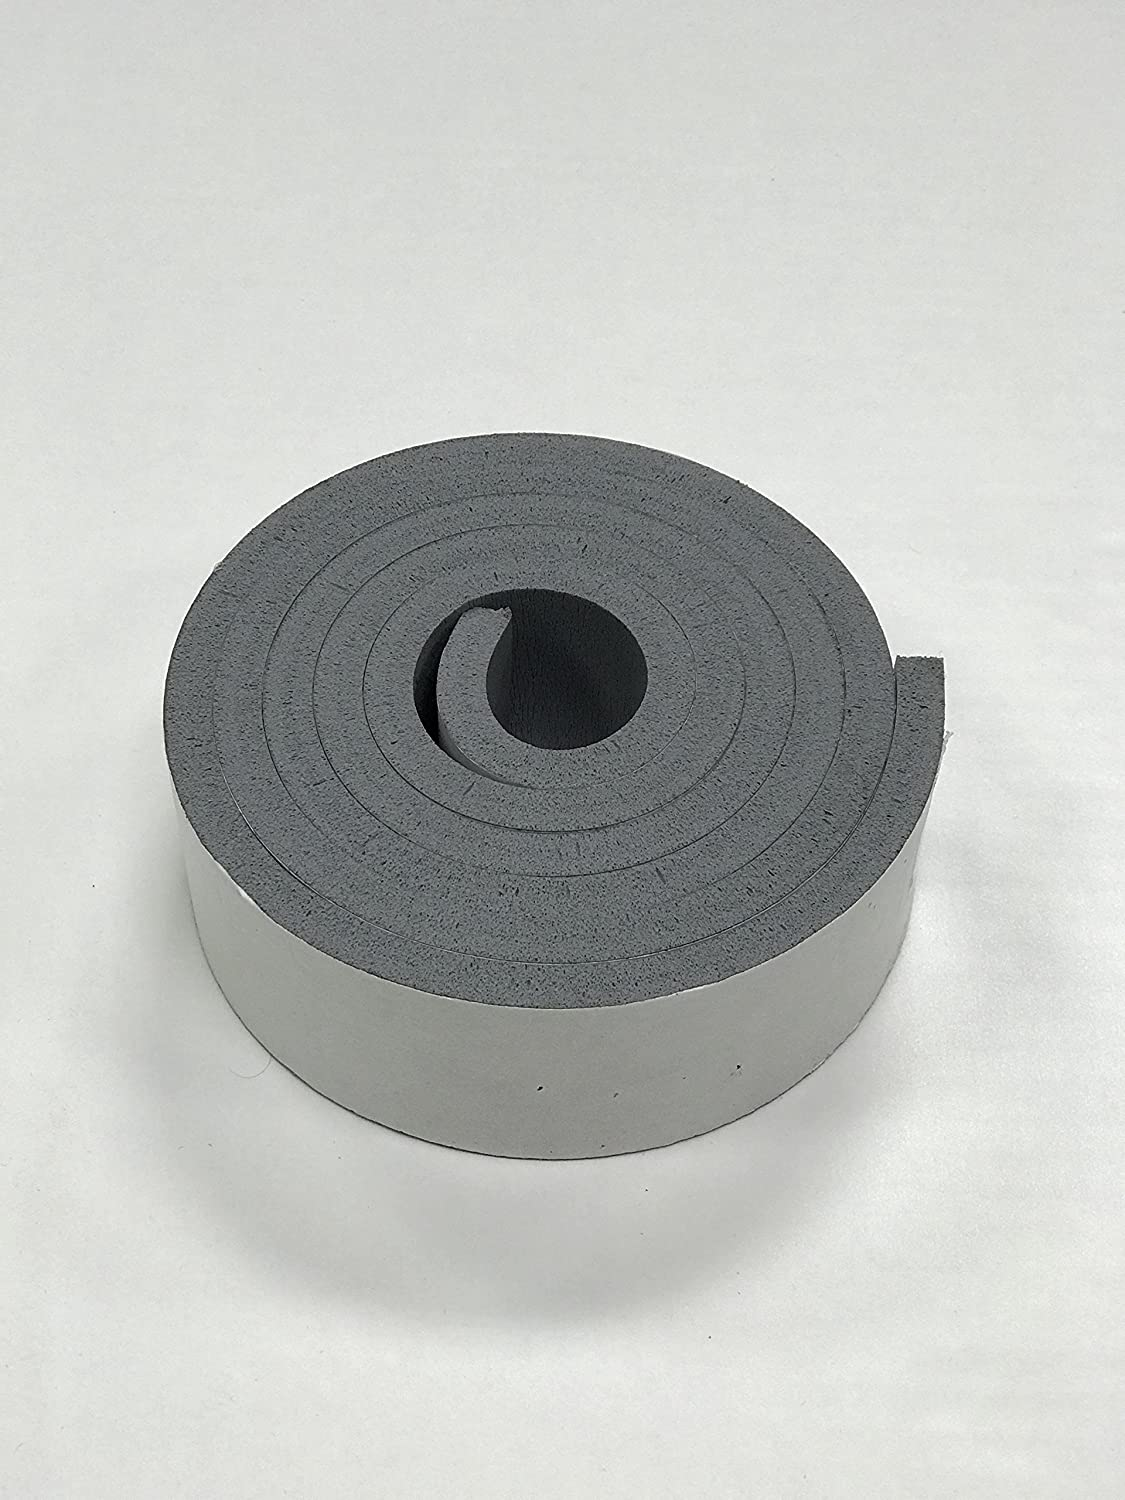 USA Sealing FDA Silicone Foam Strip with High Temp Adhesive Long 3//8 Thick x 1 Wide x 6 ft